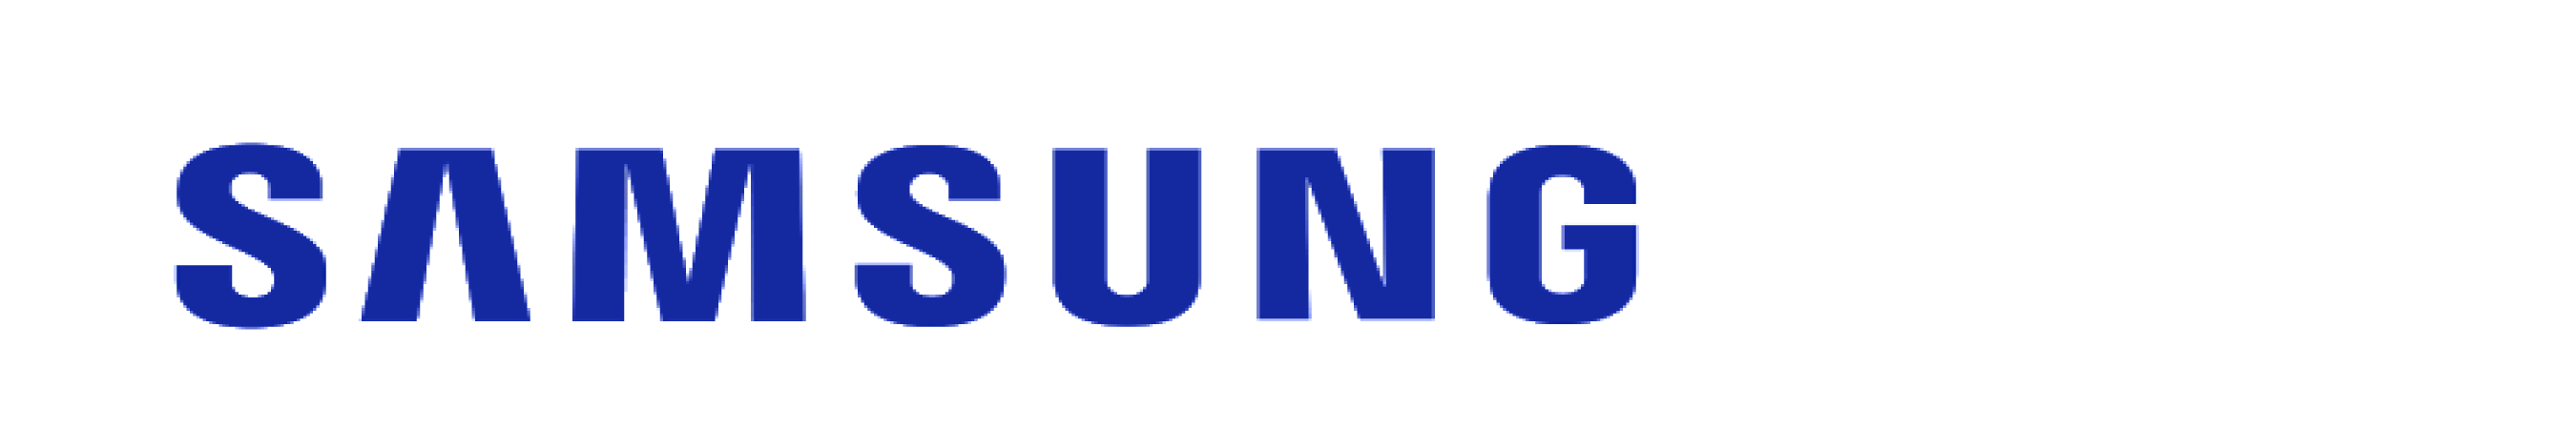 logo sam sung